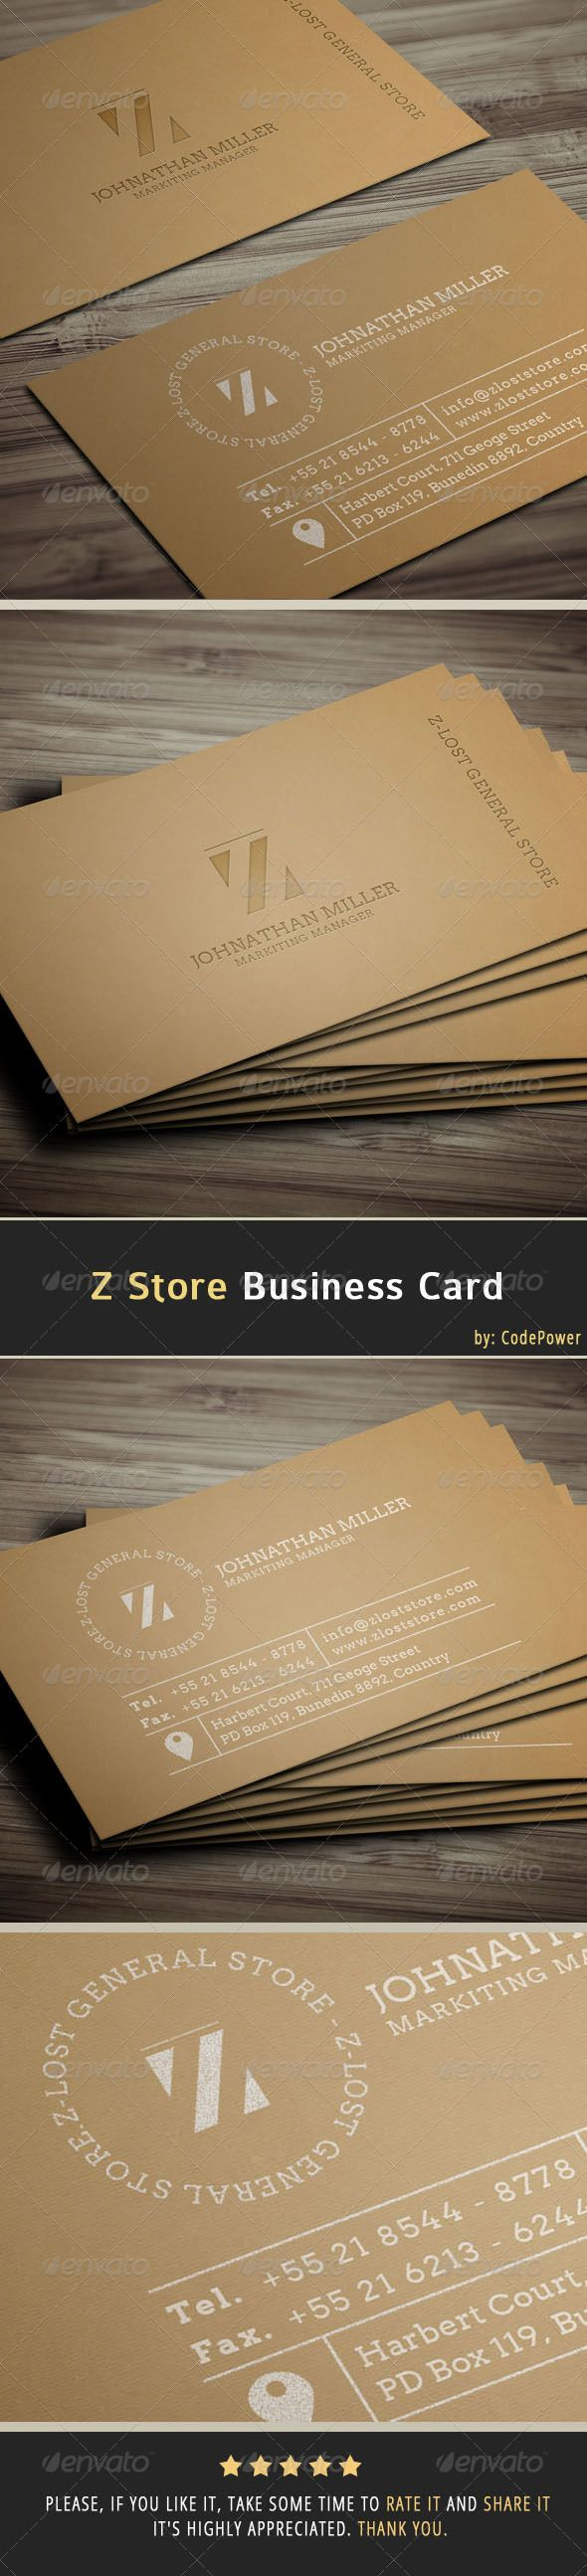 Z Store Business Card Business Card Photoshop Business Cards Creative Business Card Design Creative